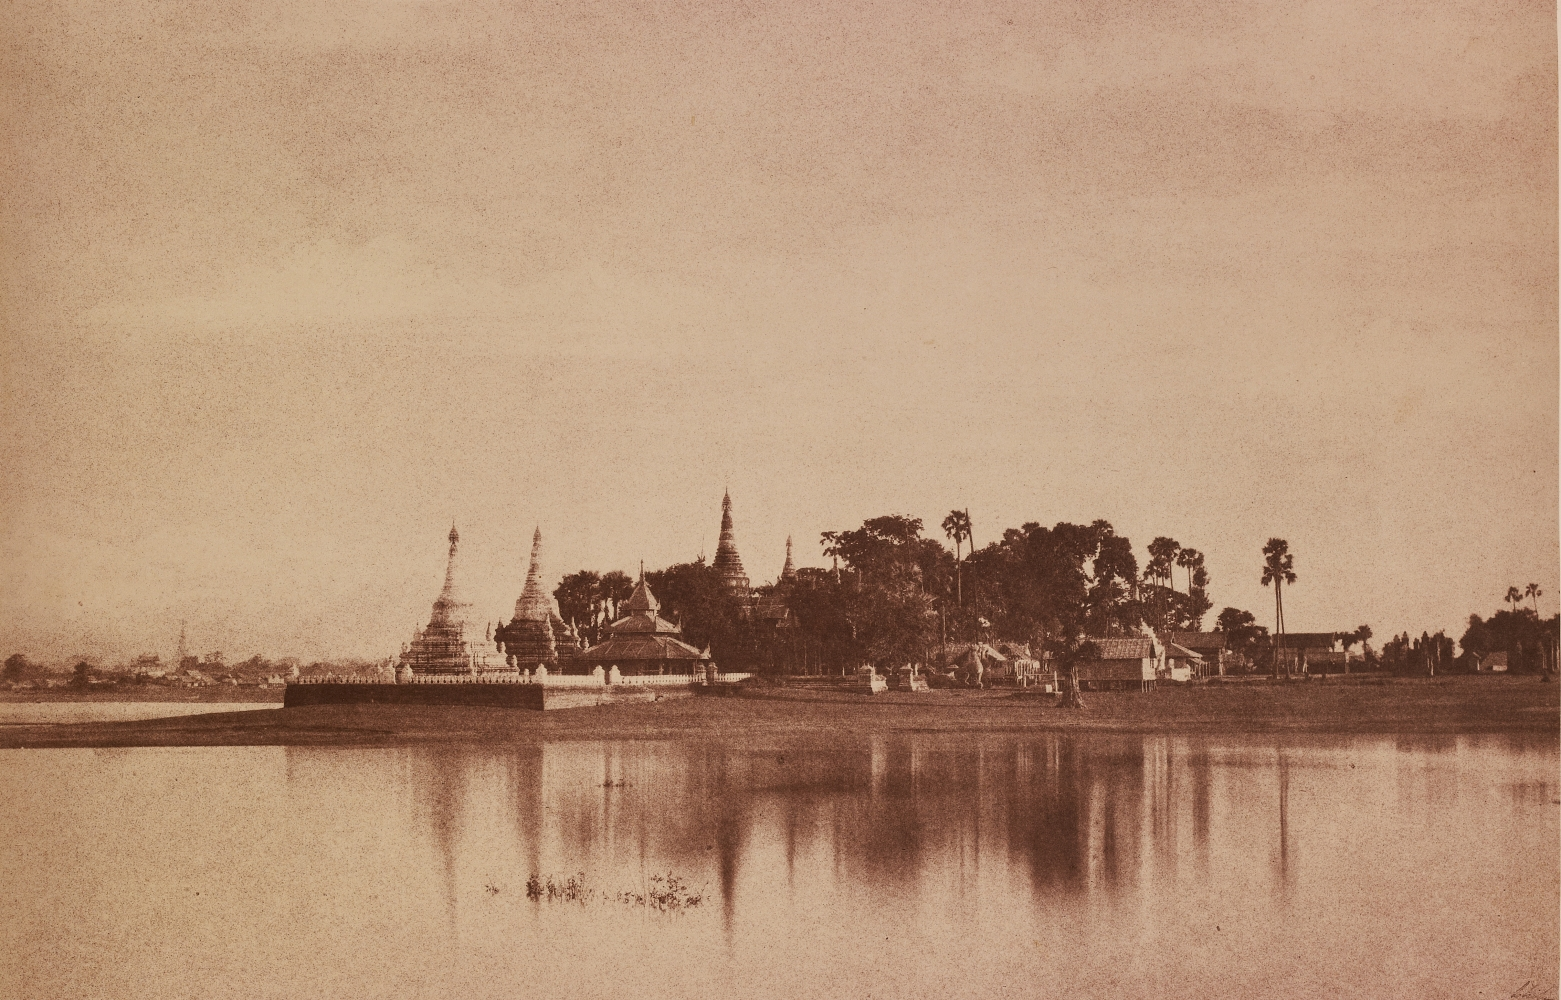 """Captain Linnaeus TRIPE (English, 1822-1902) """"No. 56. Amerapoora. View on the Lake."""", September-October 1855 Albumenized salt print from a waxed paper negative 22.4 x 34.8 cm mounted on 45.6 x 58.3 cm paper Signed """"L. Tripe"""" in ink. Photographer's blindstamp and printed label with plate number, title and """"Taken from the causeway crossing the Toung-deman lake at its Eastern extremity. A glimpse of the city is caught on the left."""" on mount."""